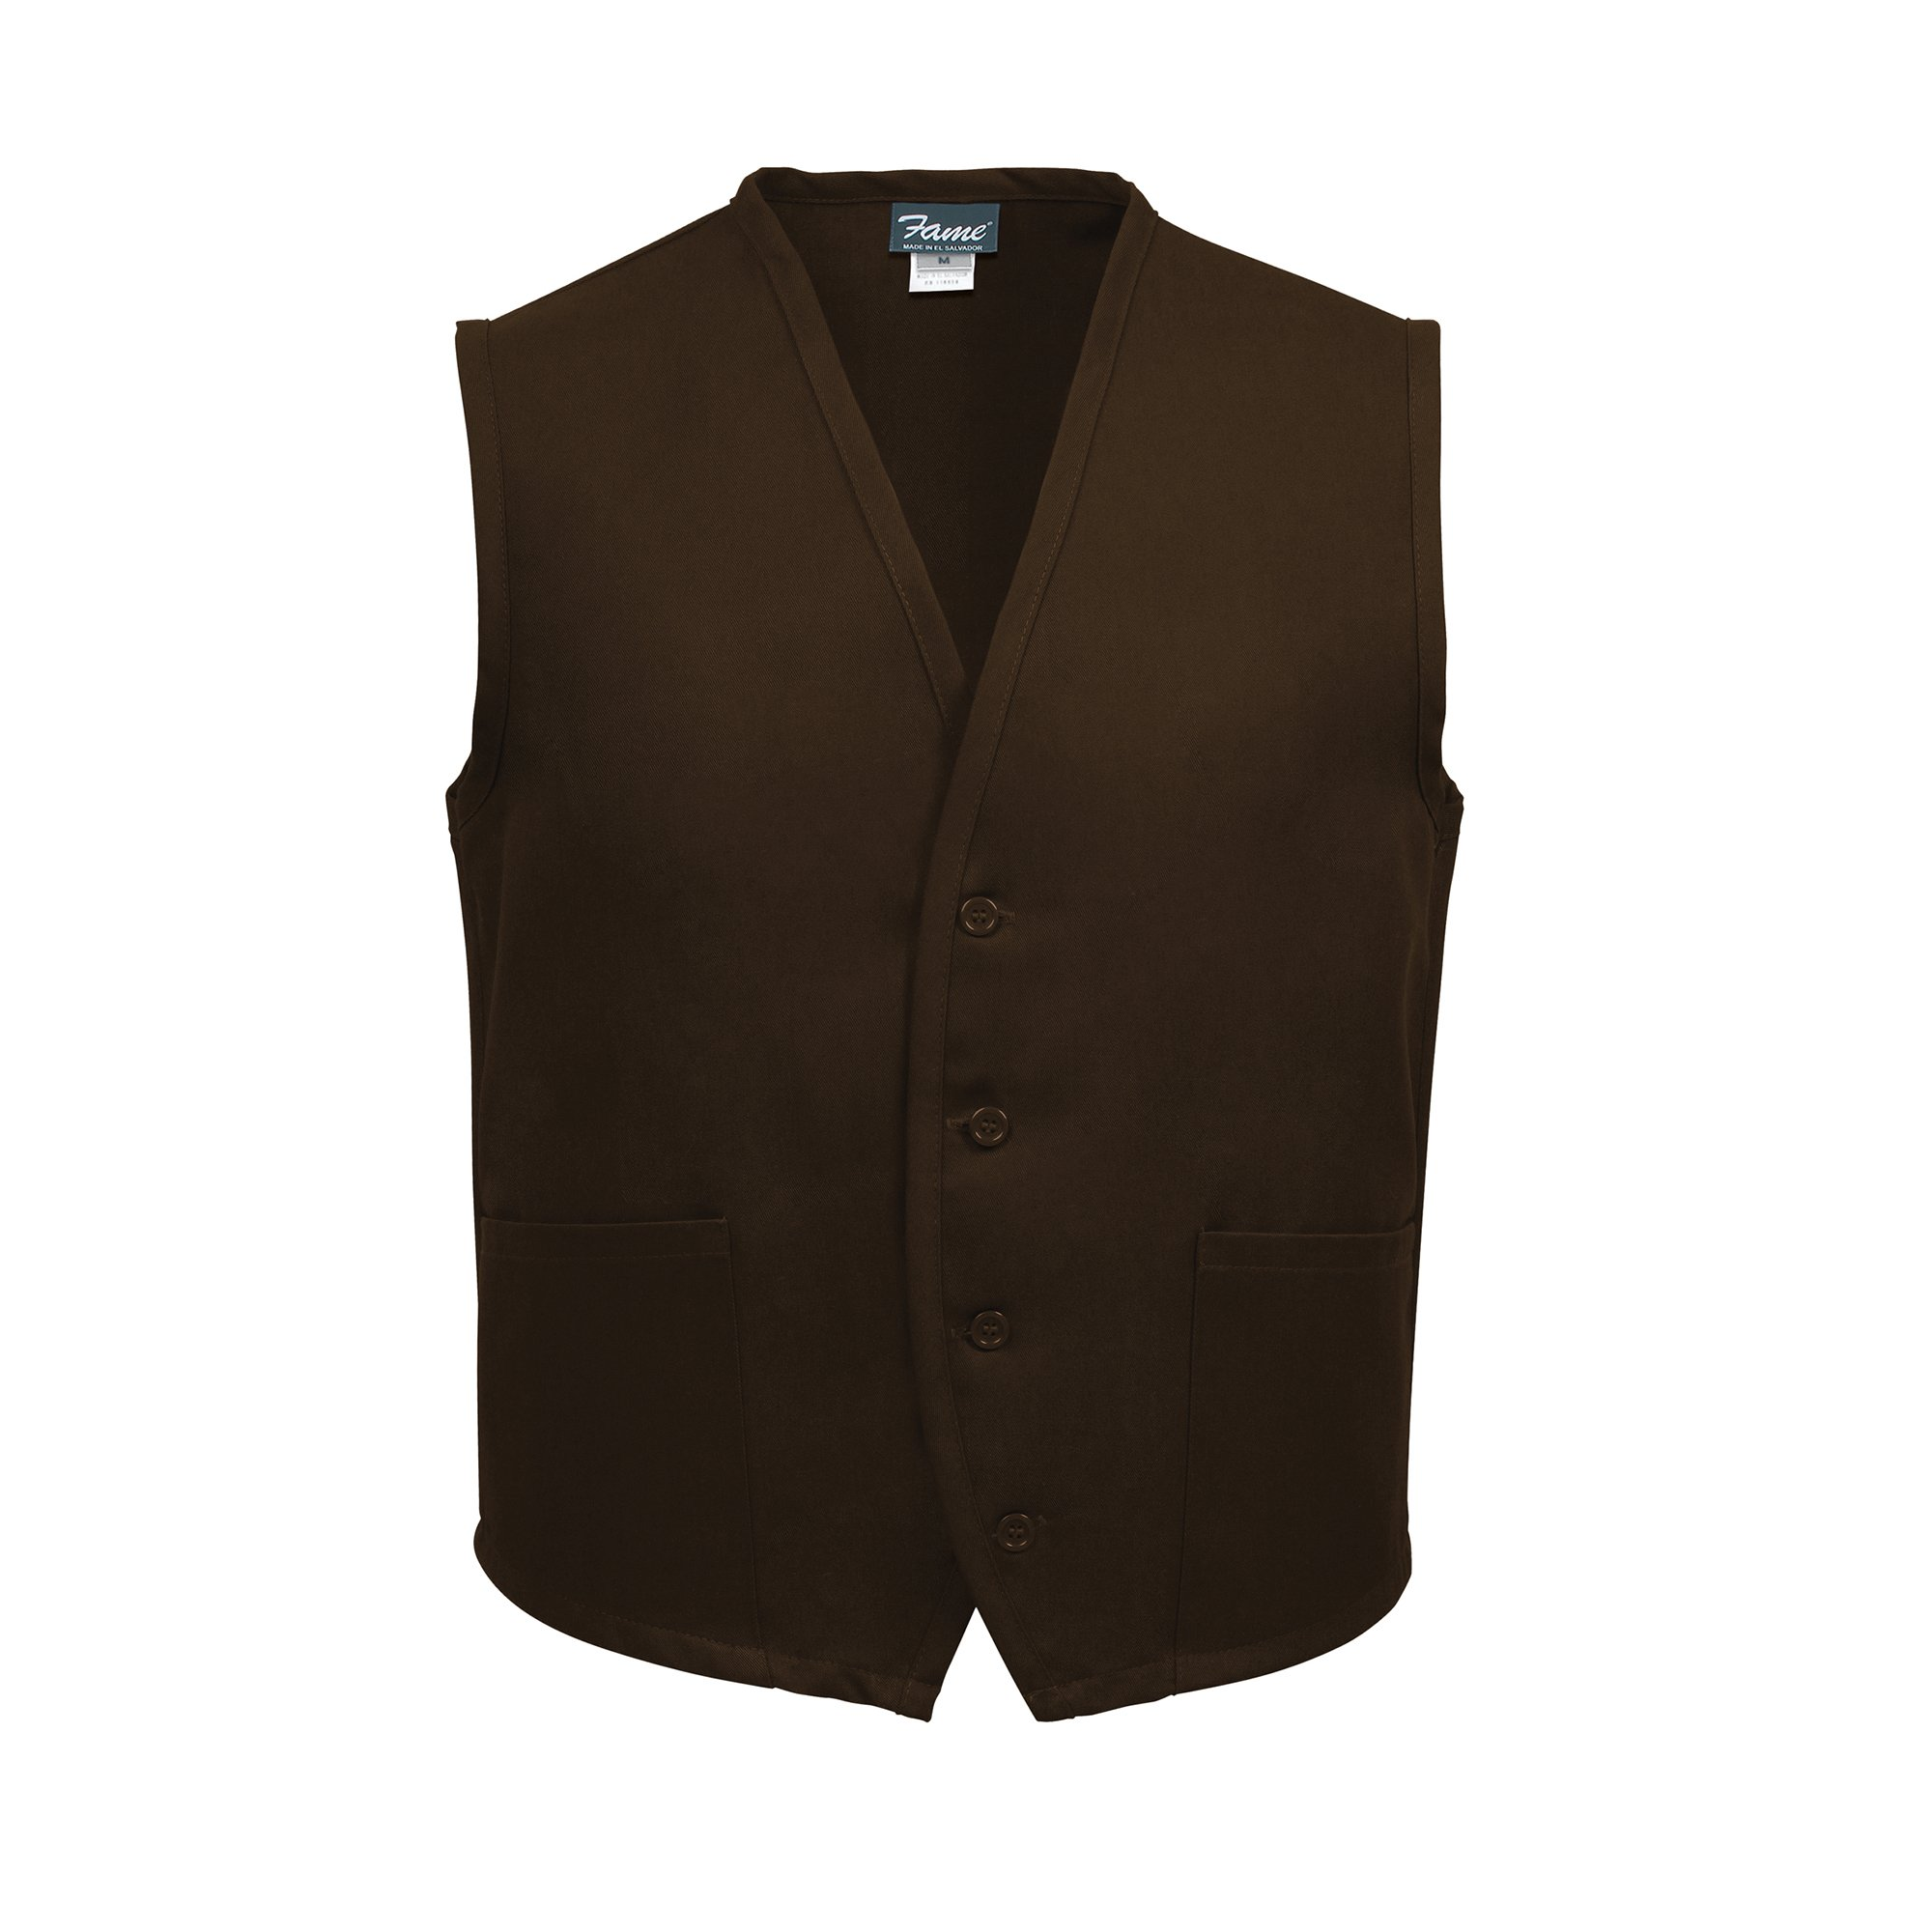 Fame Adult's 2 Pocket Vest - Brown - Medium